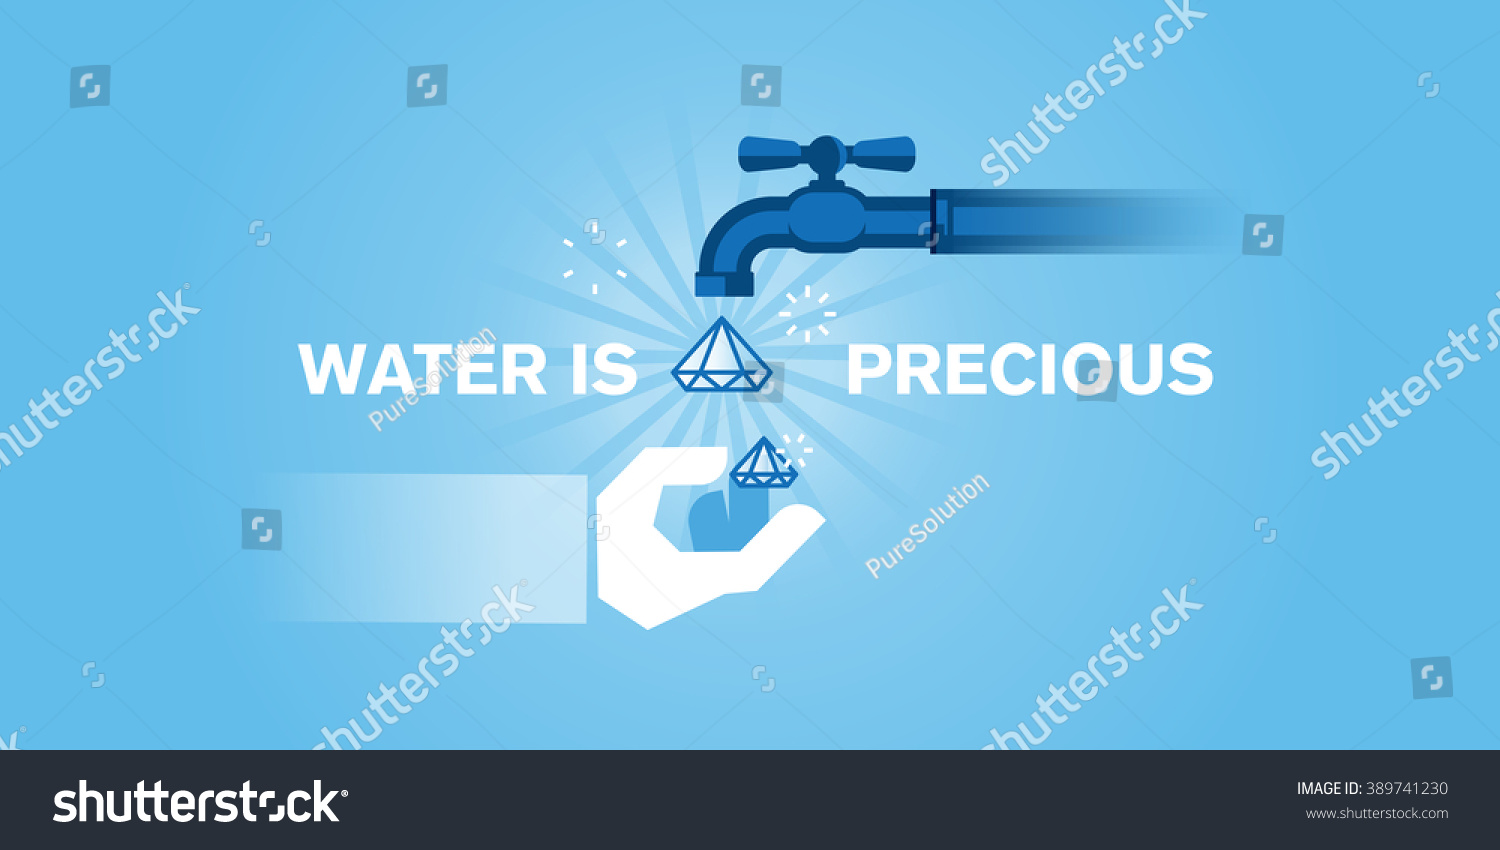 water resources water conservation Water conservation is promoted as a lifestyle in phoenix and we encourage customers to think about water every time they use it through these efforts and as we plan for the future, phoenix water supplies continue to keep pace with demand.